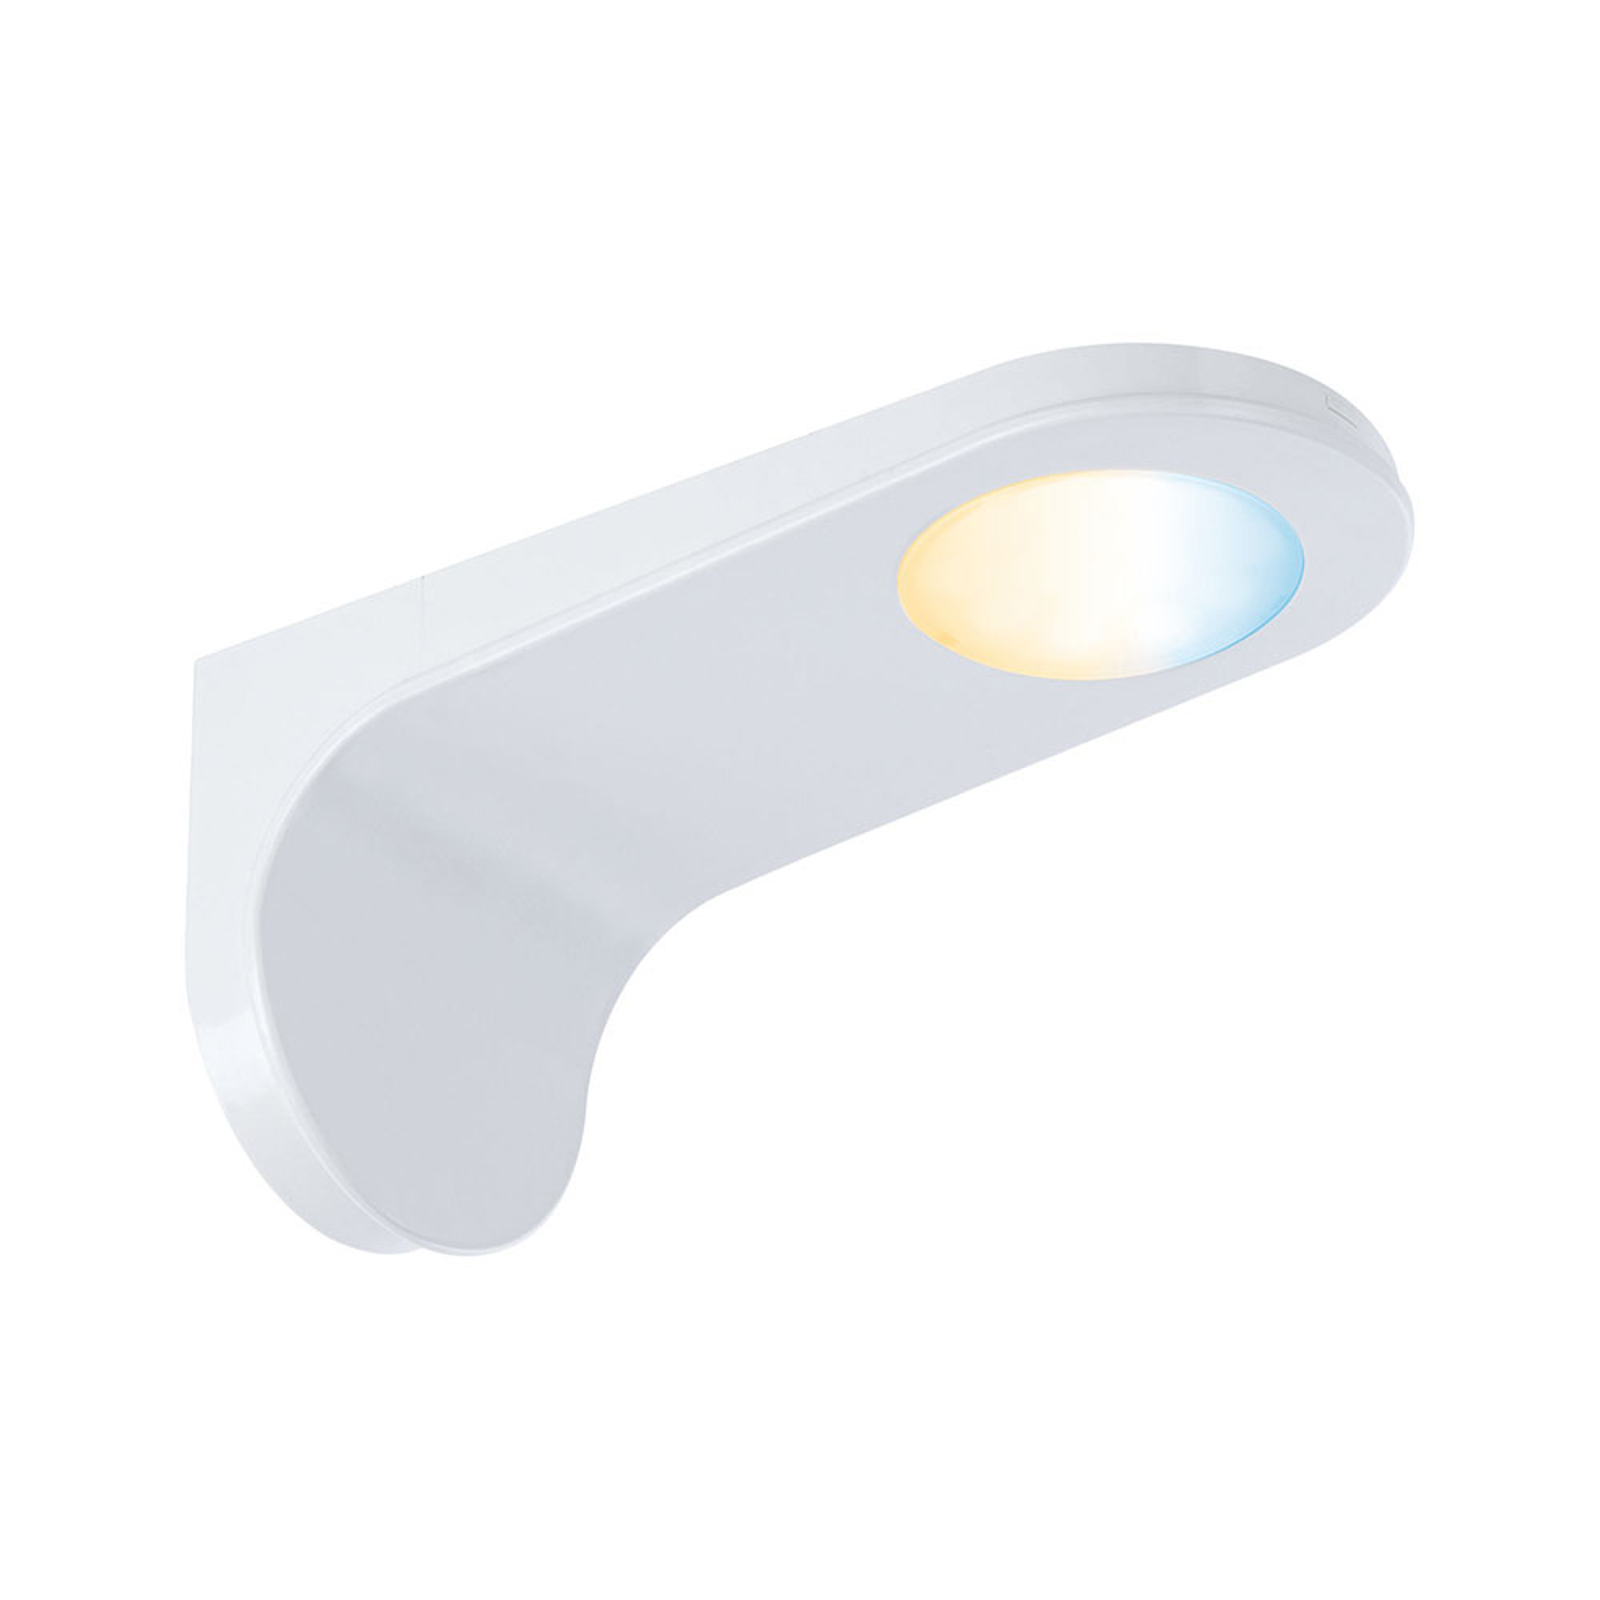 Paulmann Clever Connect Neda lampe meuble, blanche